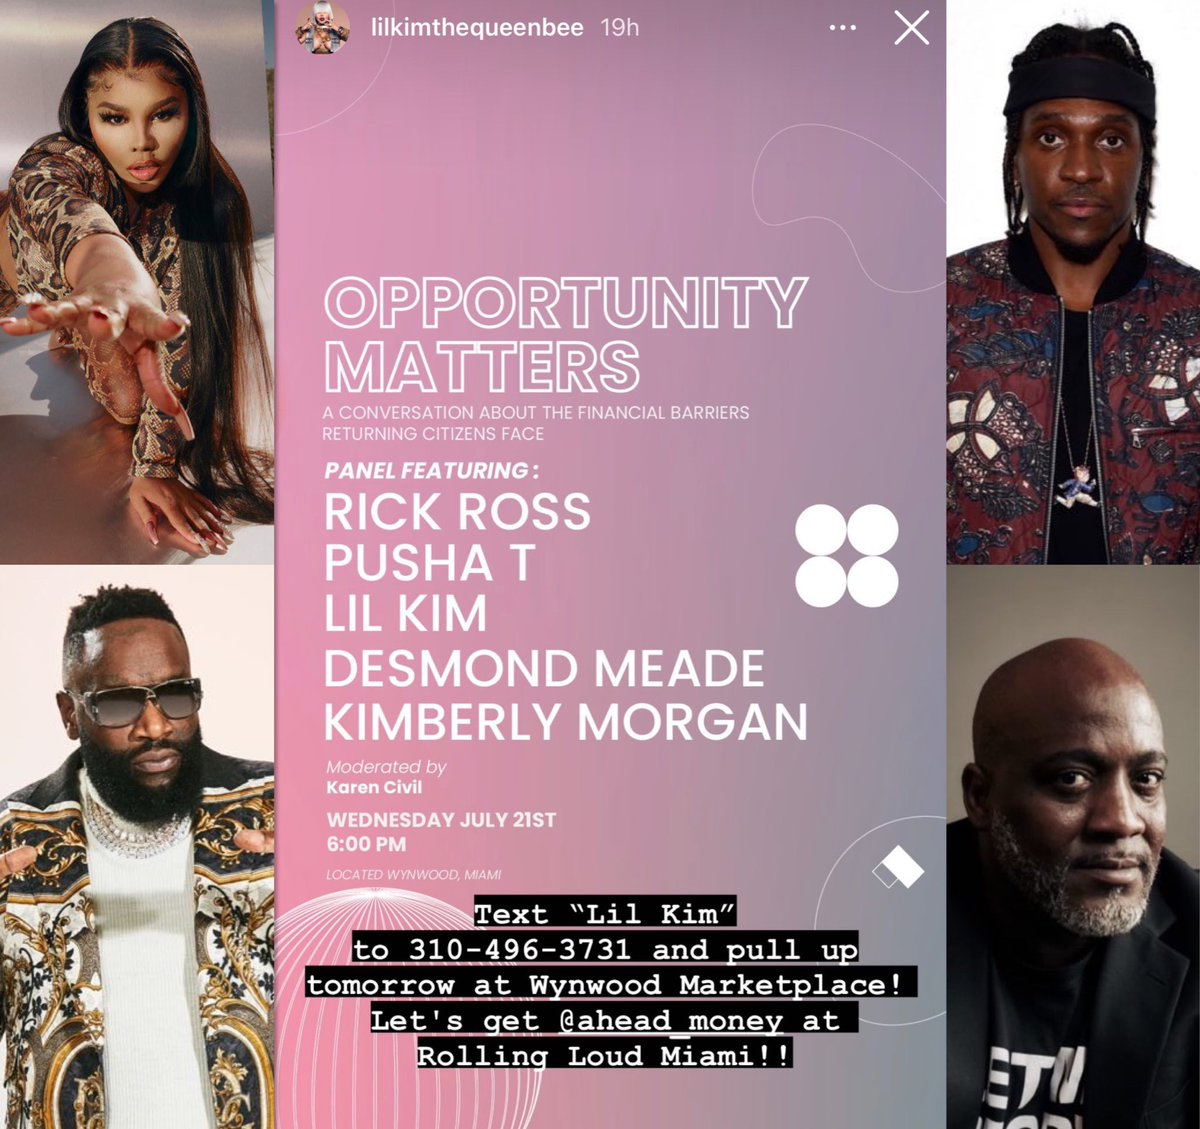 MIAMI FL, Lil' Kim, Rick Ross, Pusha T, Desmond Meade, & Kimberly Morgan have a sit down about life after the pen and financial barriers https://t.co/g1icQXVqqI